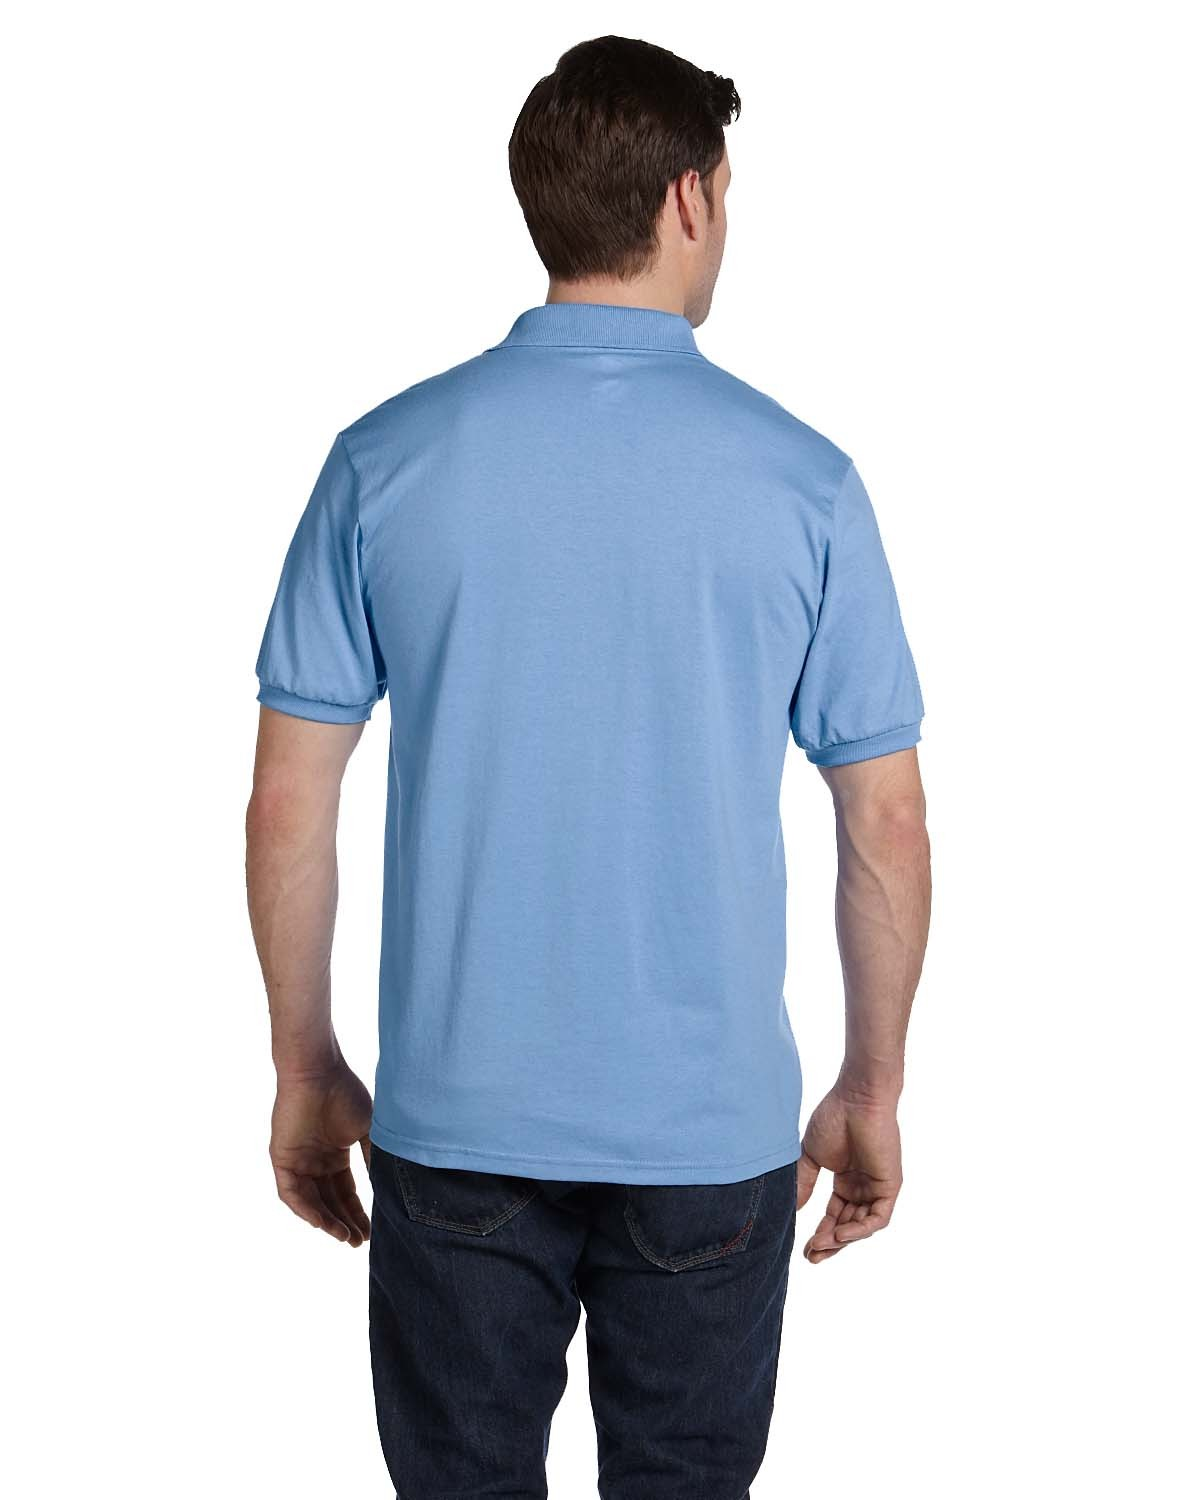 054 Hanes LIGHT BLUE